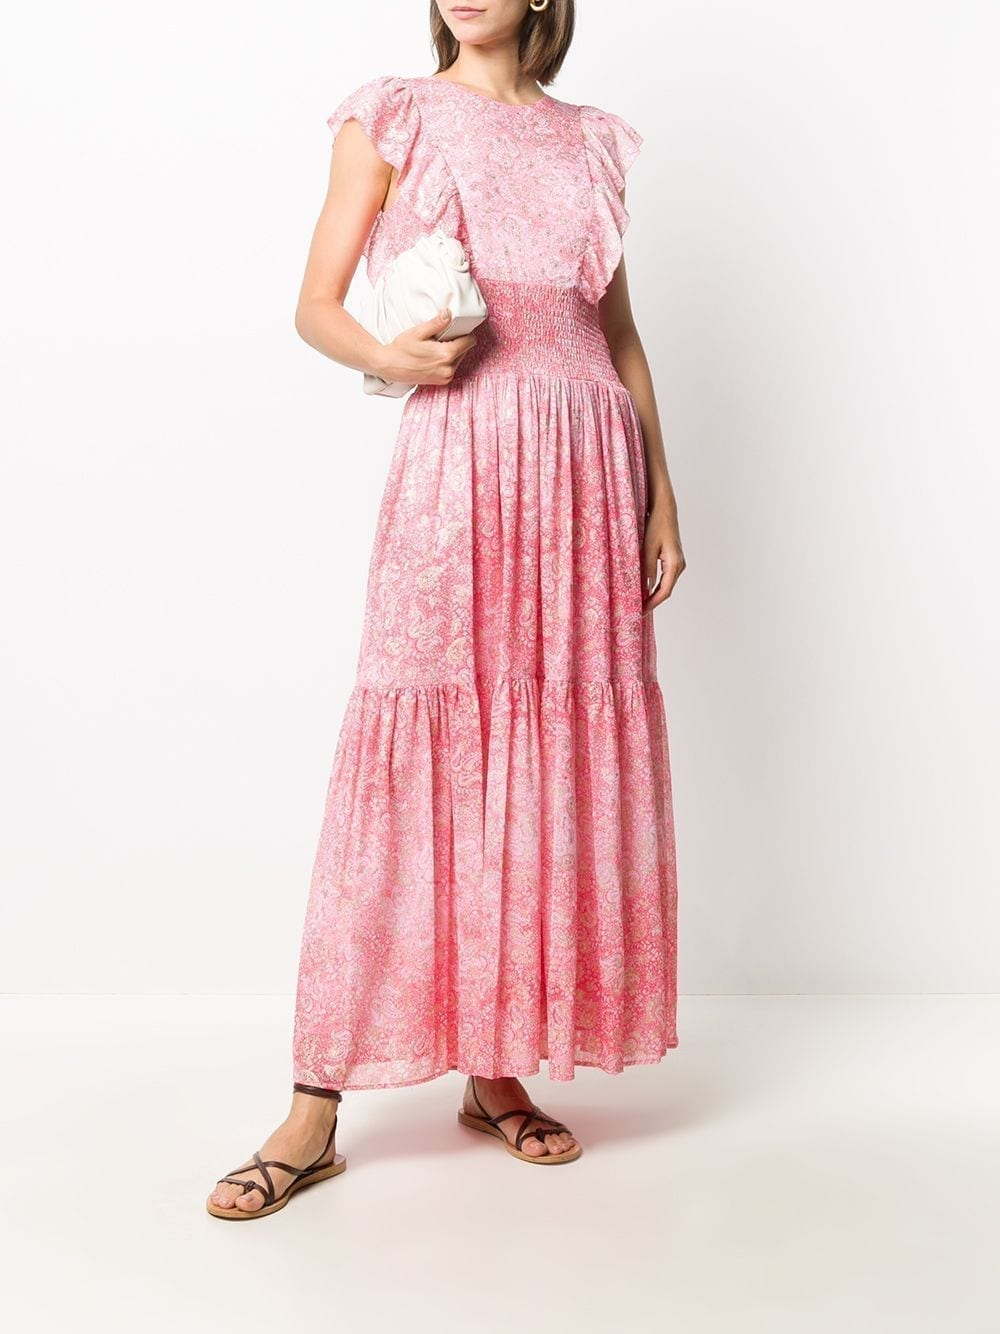 MICHAEL MICHAEL KORS Paisley Print Maxi Dress